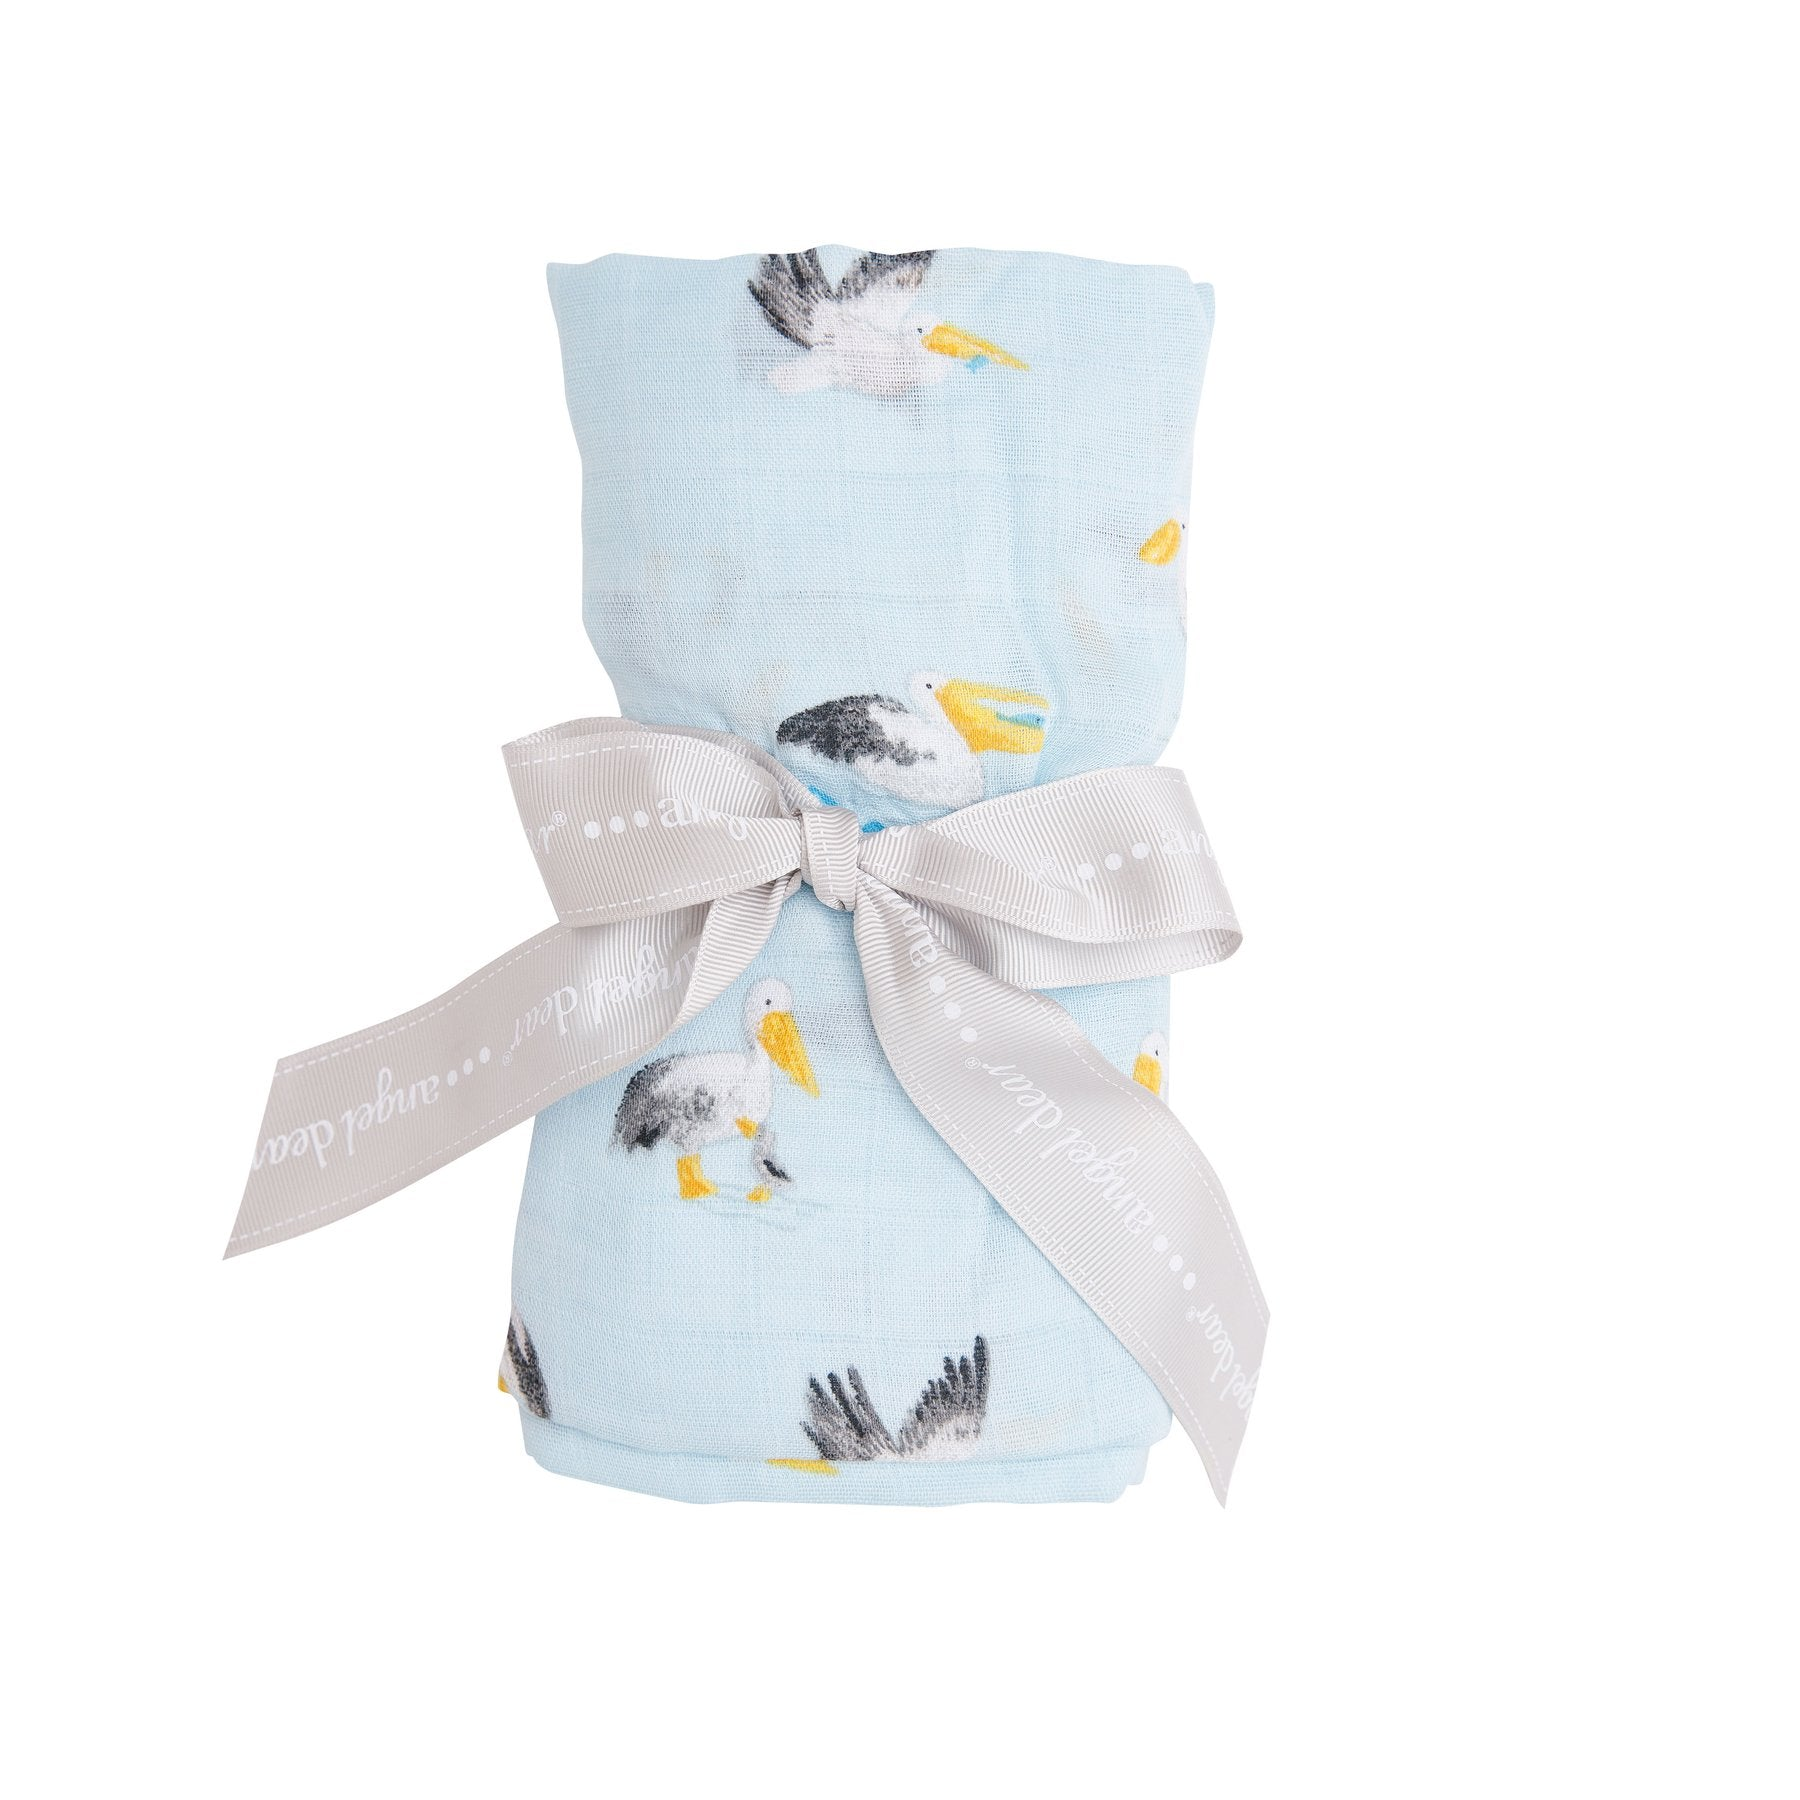 Blue Pelicans Swaddle Blanket